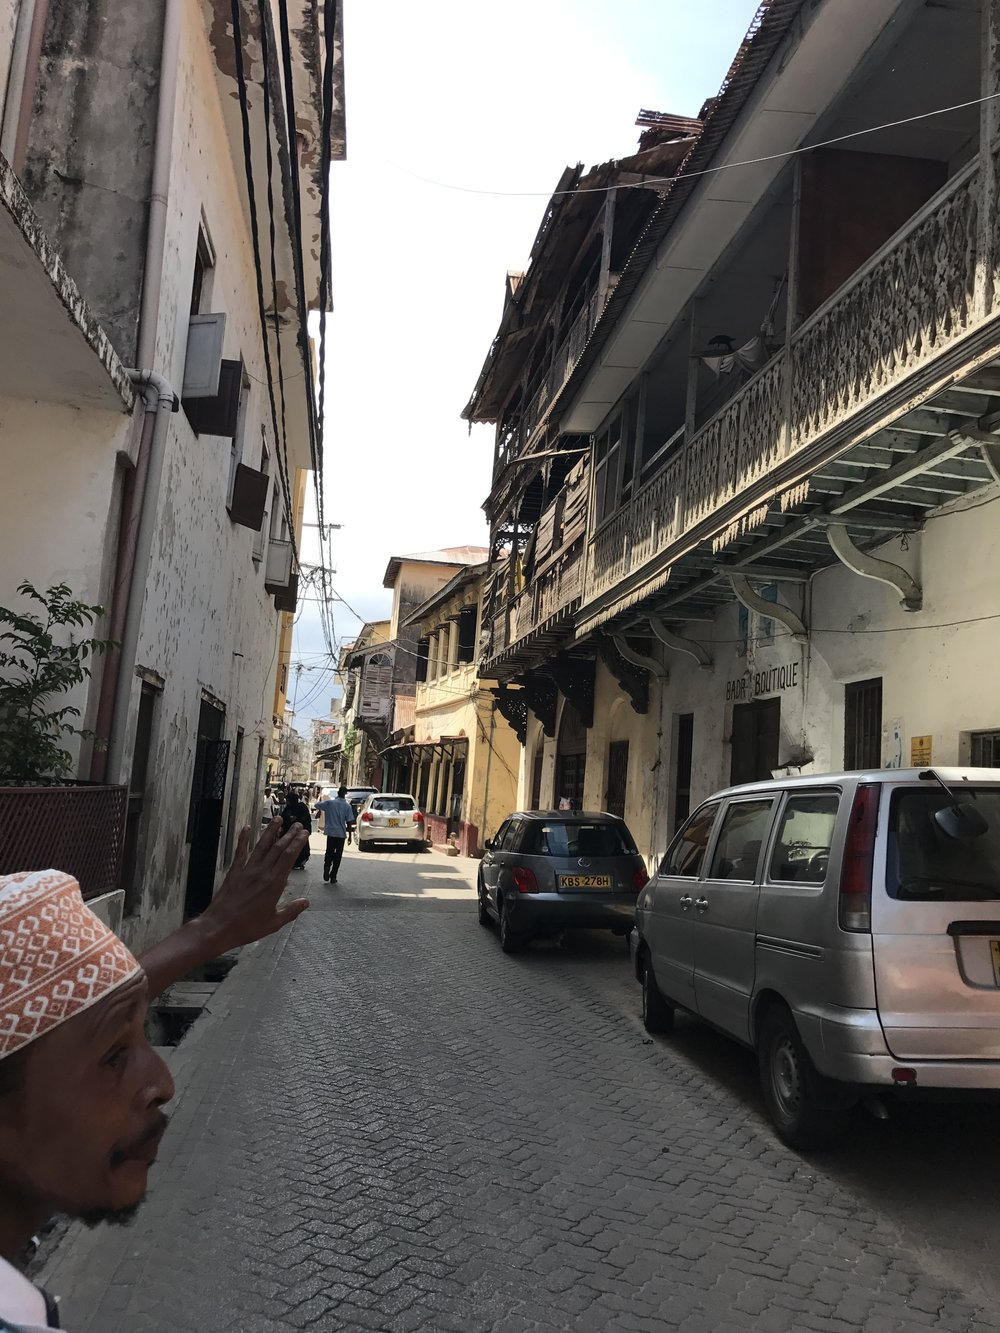 Walking through Mombasa's Old Town